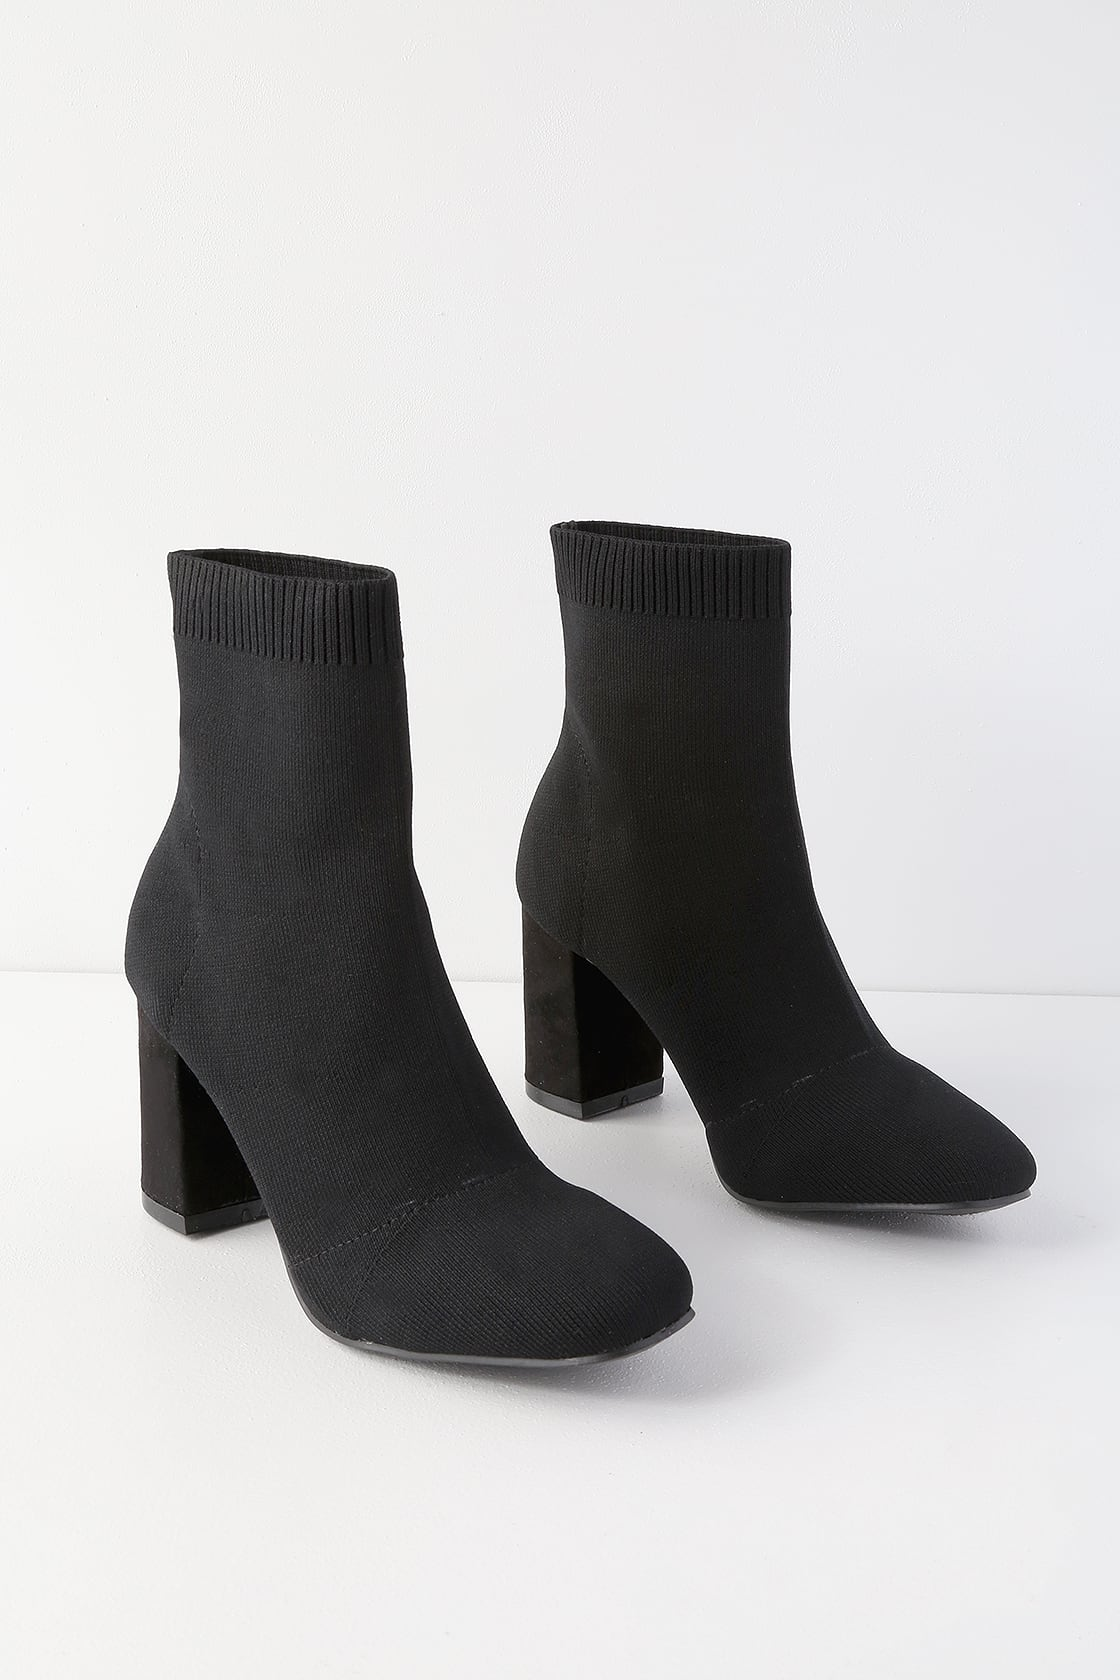 10 Cute Booties You Need For This FallWinter